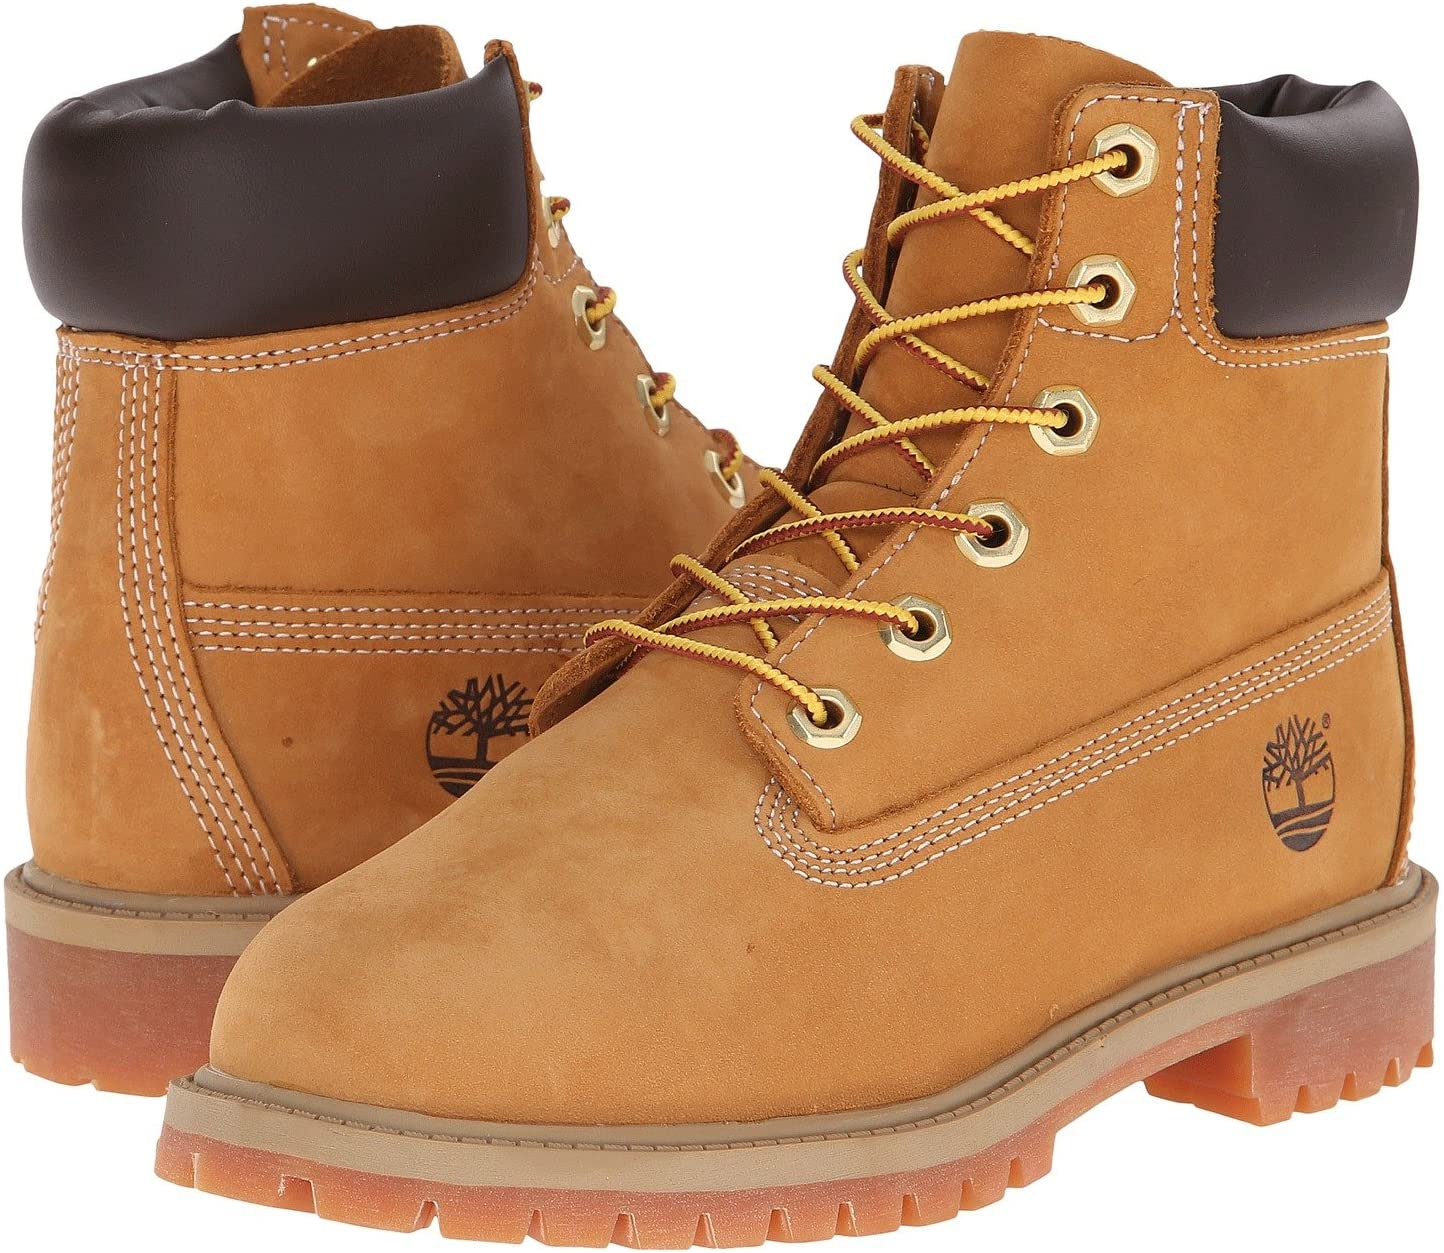 87f1392cfd5 Timberland Boots & Shoes | Shipped FREE at Zappos | Zappos.com